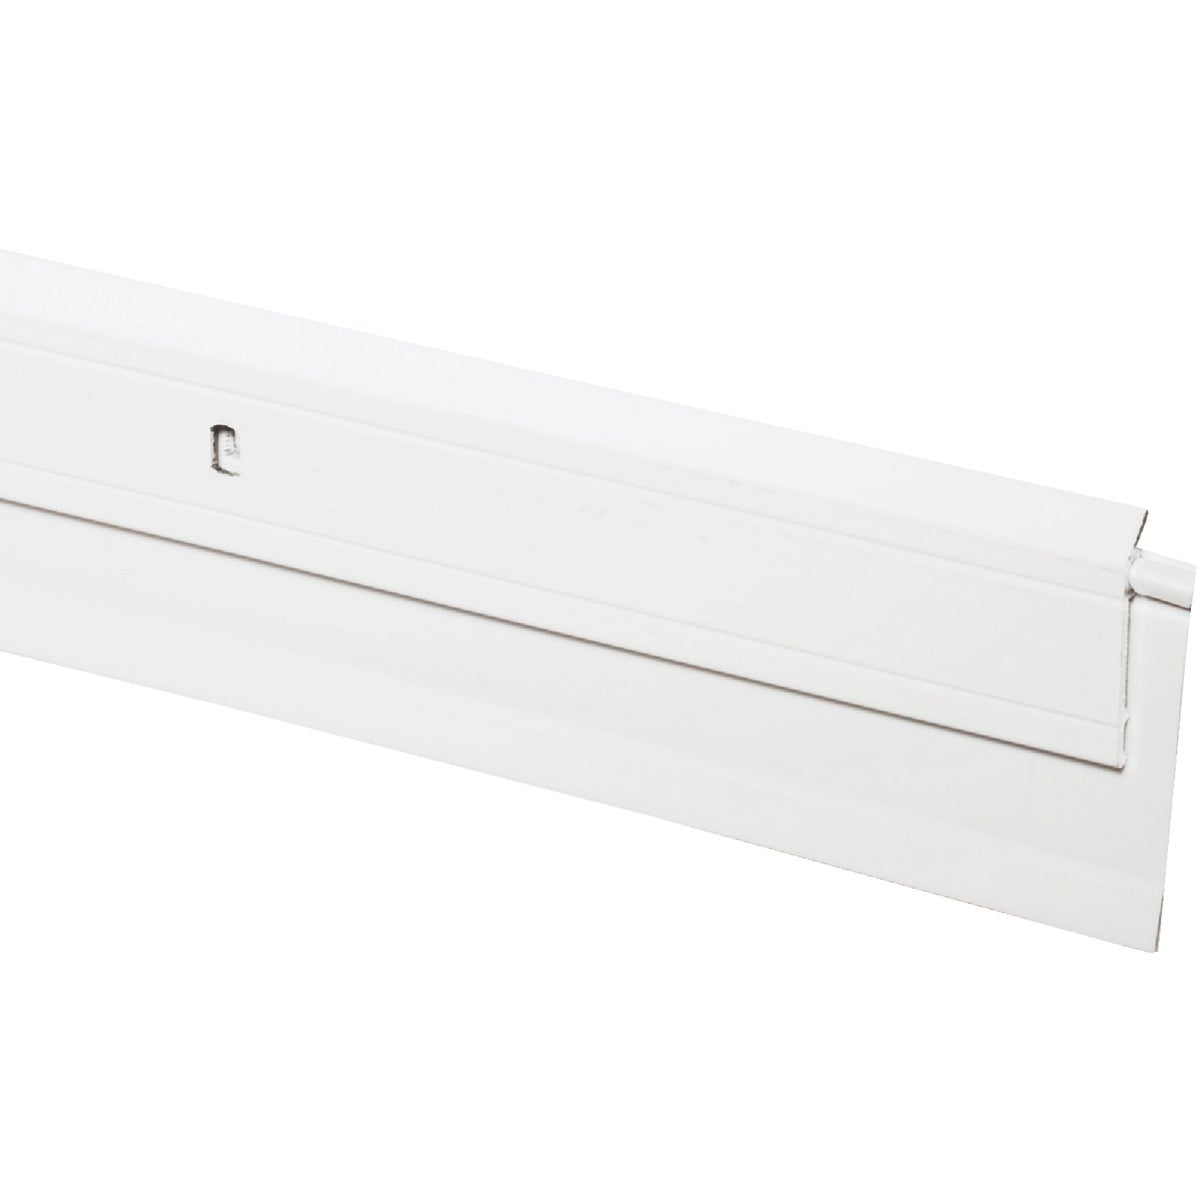 "36"" WHT EXV DOOR SWEEP - 05769 by M D Building Prod"